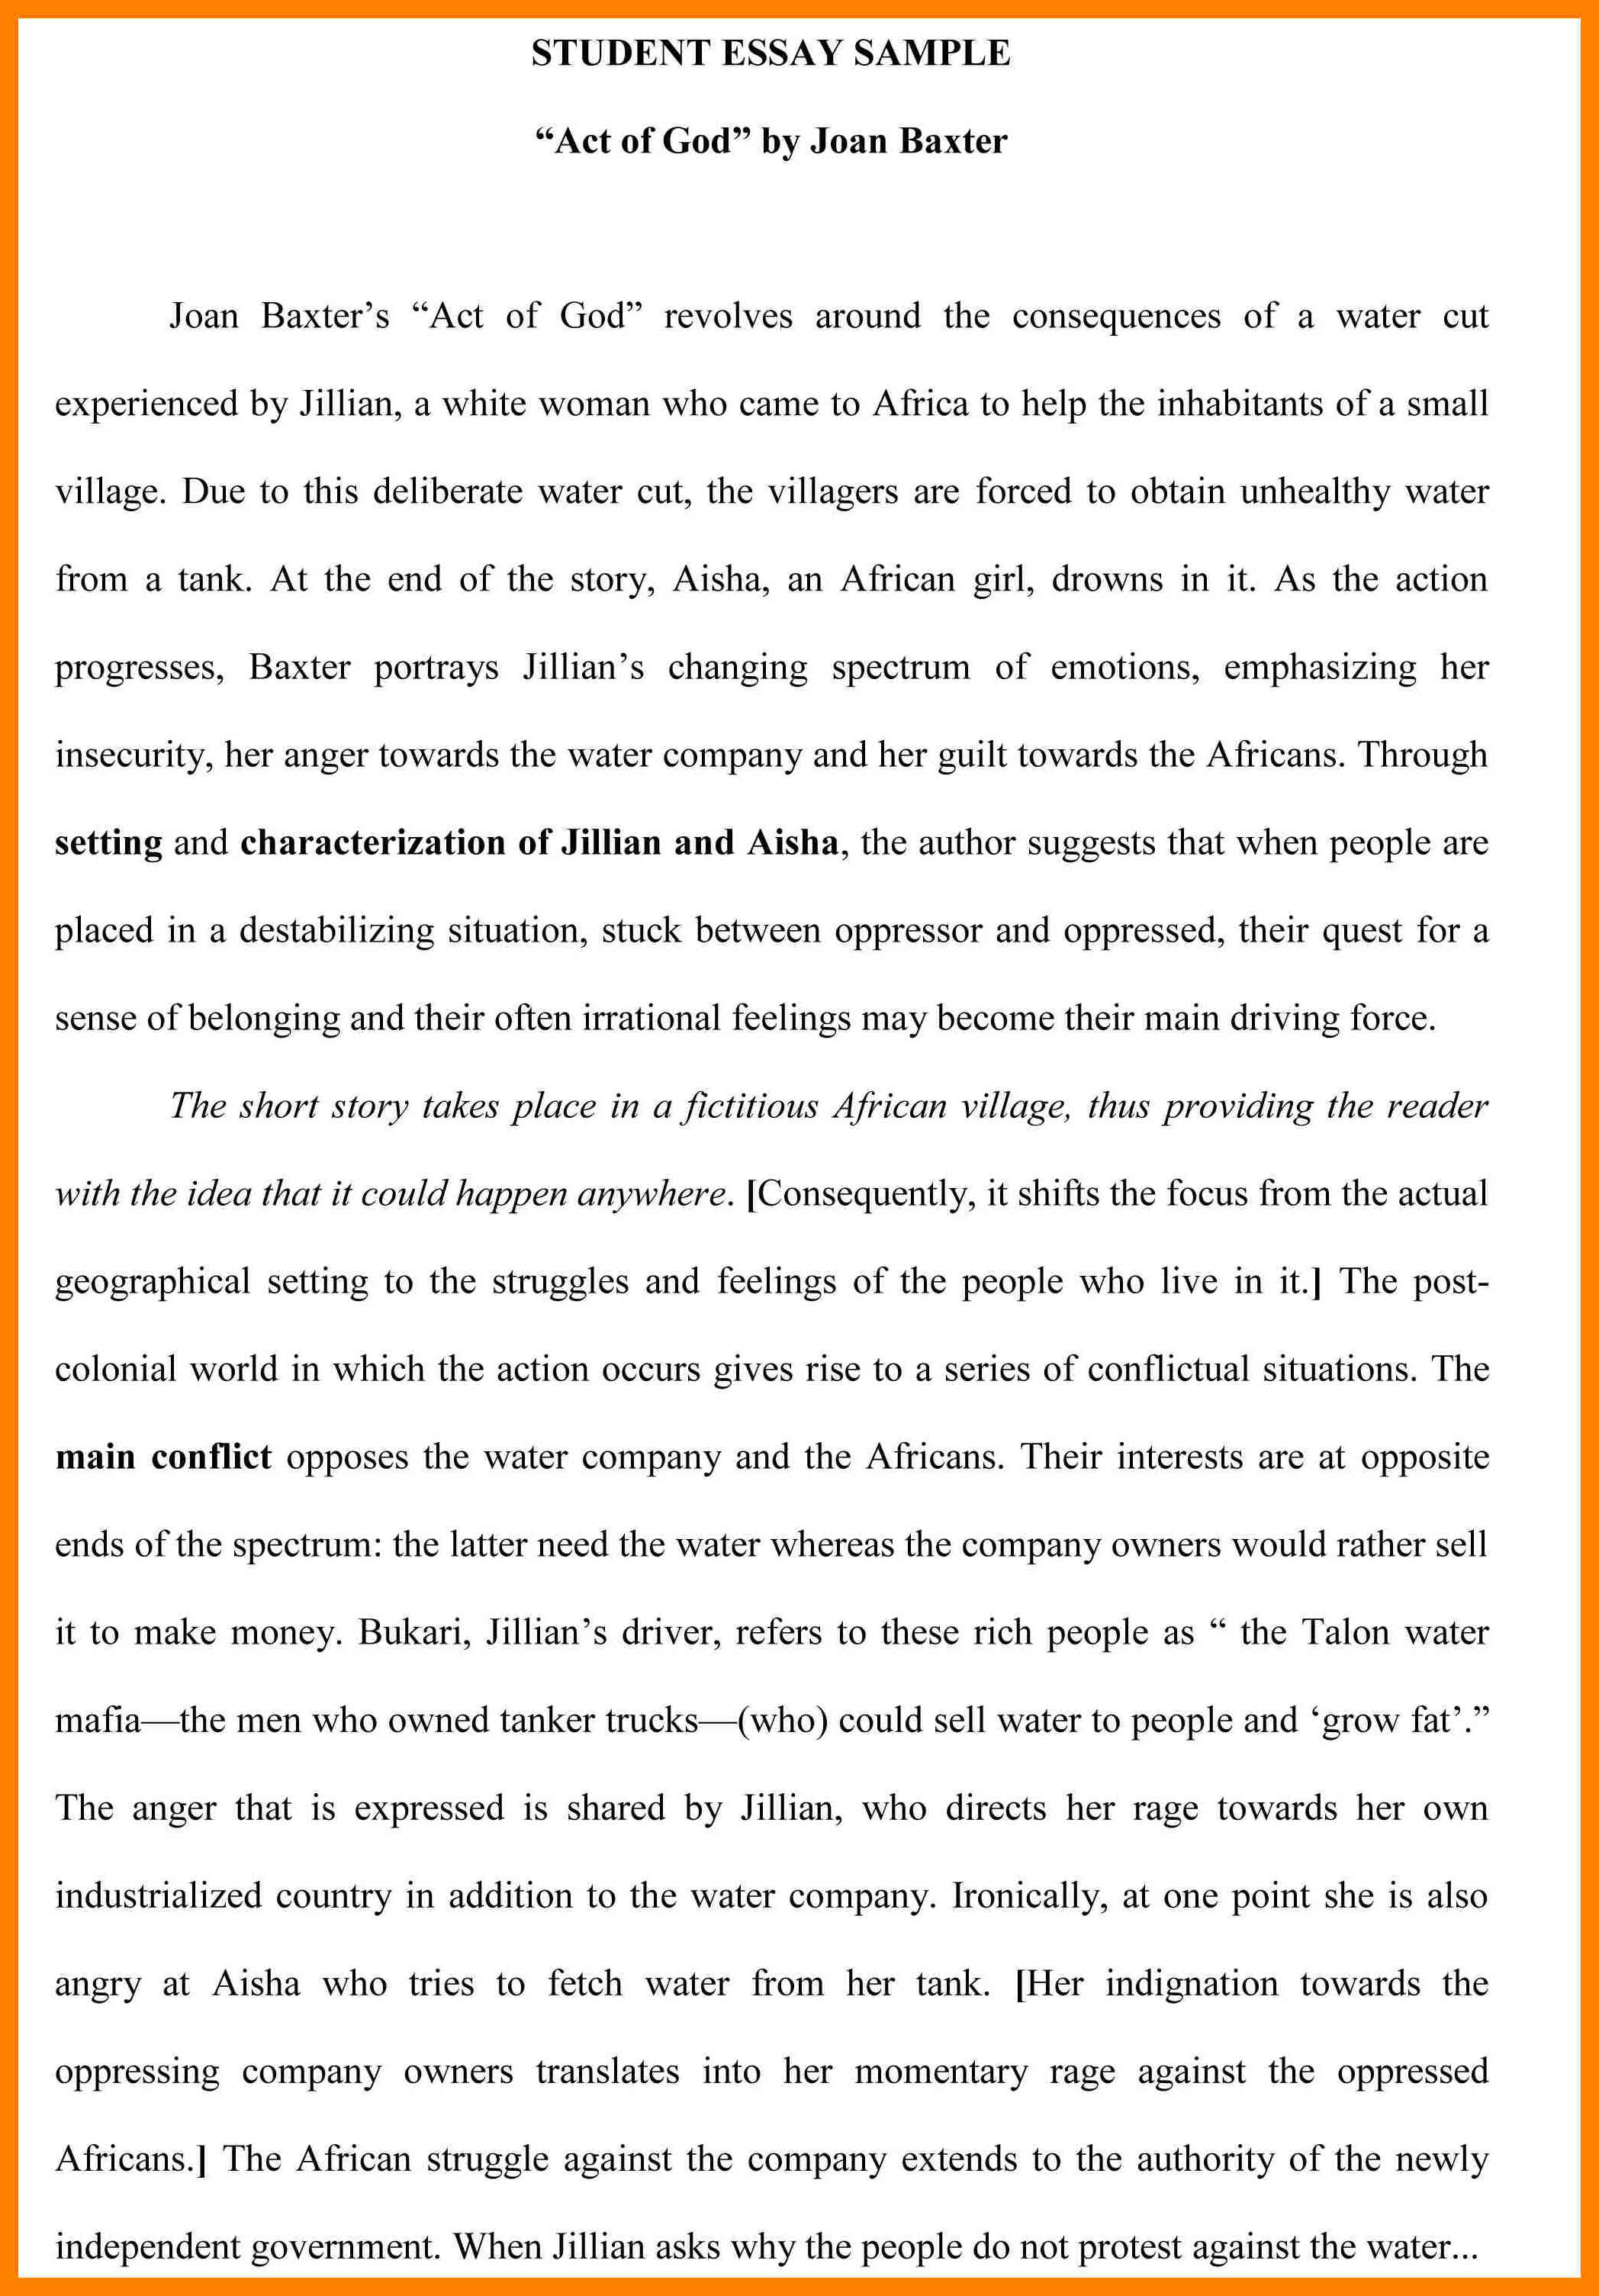 001 Sample Math Test Act Elmifermetures Com Ideas Collection Essay Awesome Of Livesto Essays Pdf New Topics Wonderful Writing Full